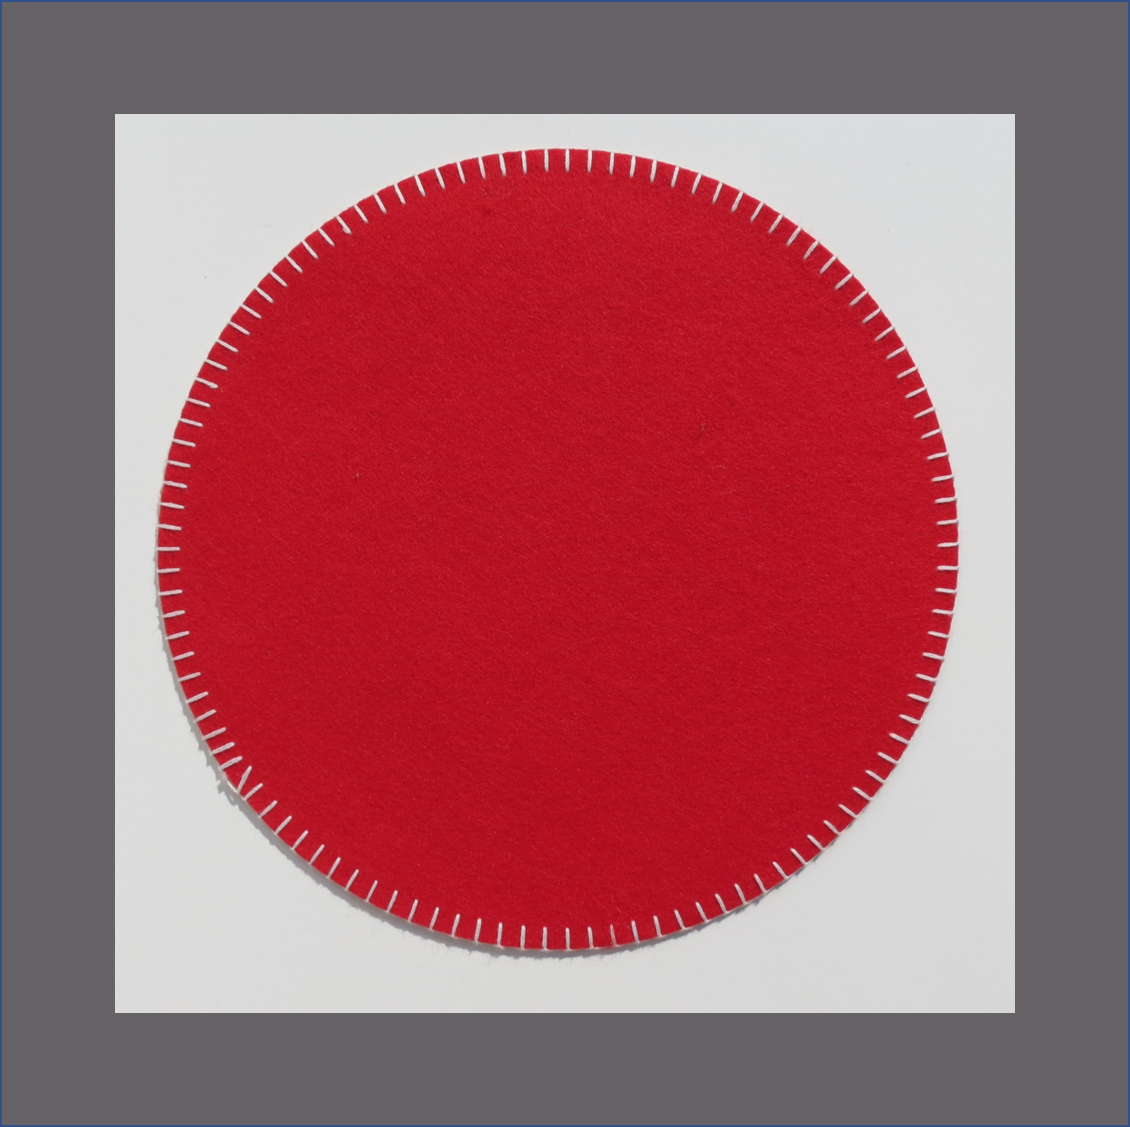 red-round-placemat-with-white-stitch-felt